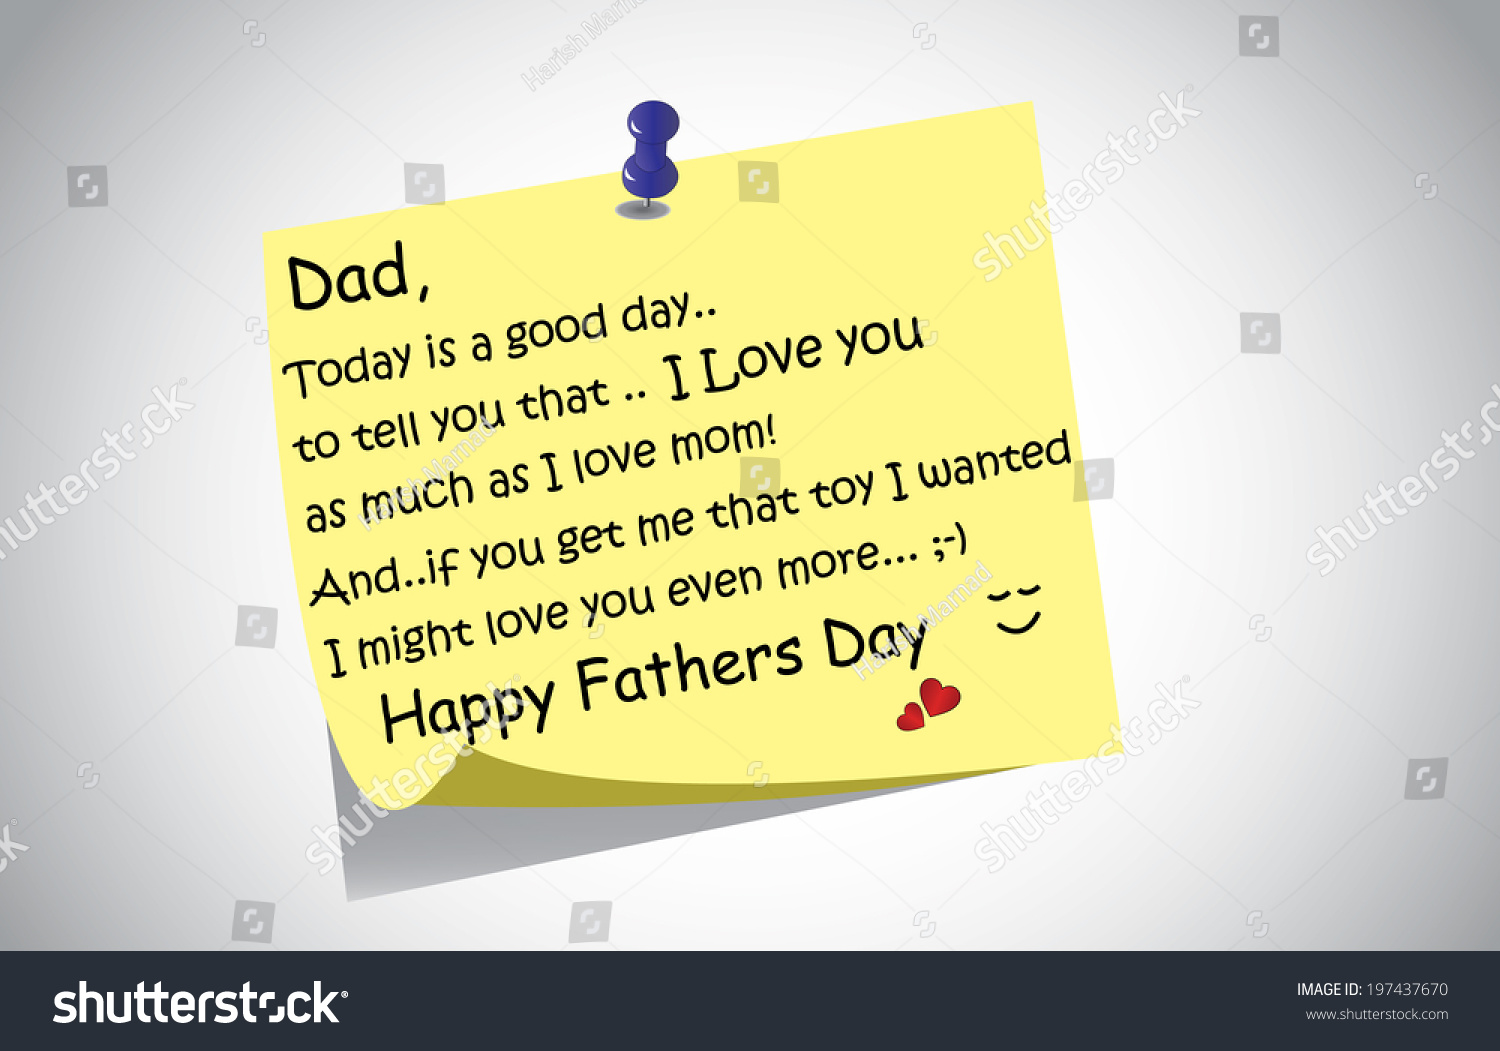 Unique happy fathers day post note stock vector royalty free unique happy fathers day post it note text greetings concept a touching and lovely fathers m4hsunfo